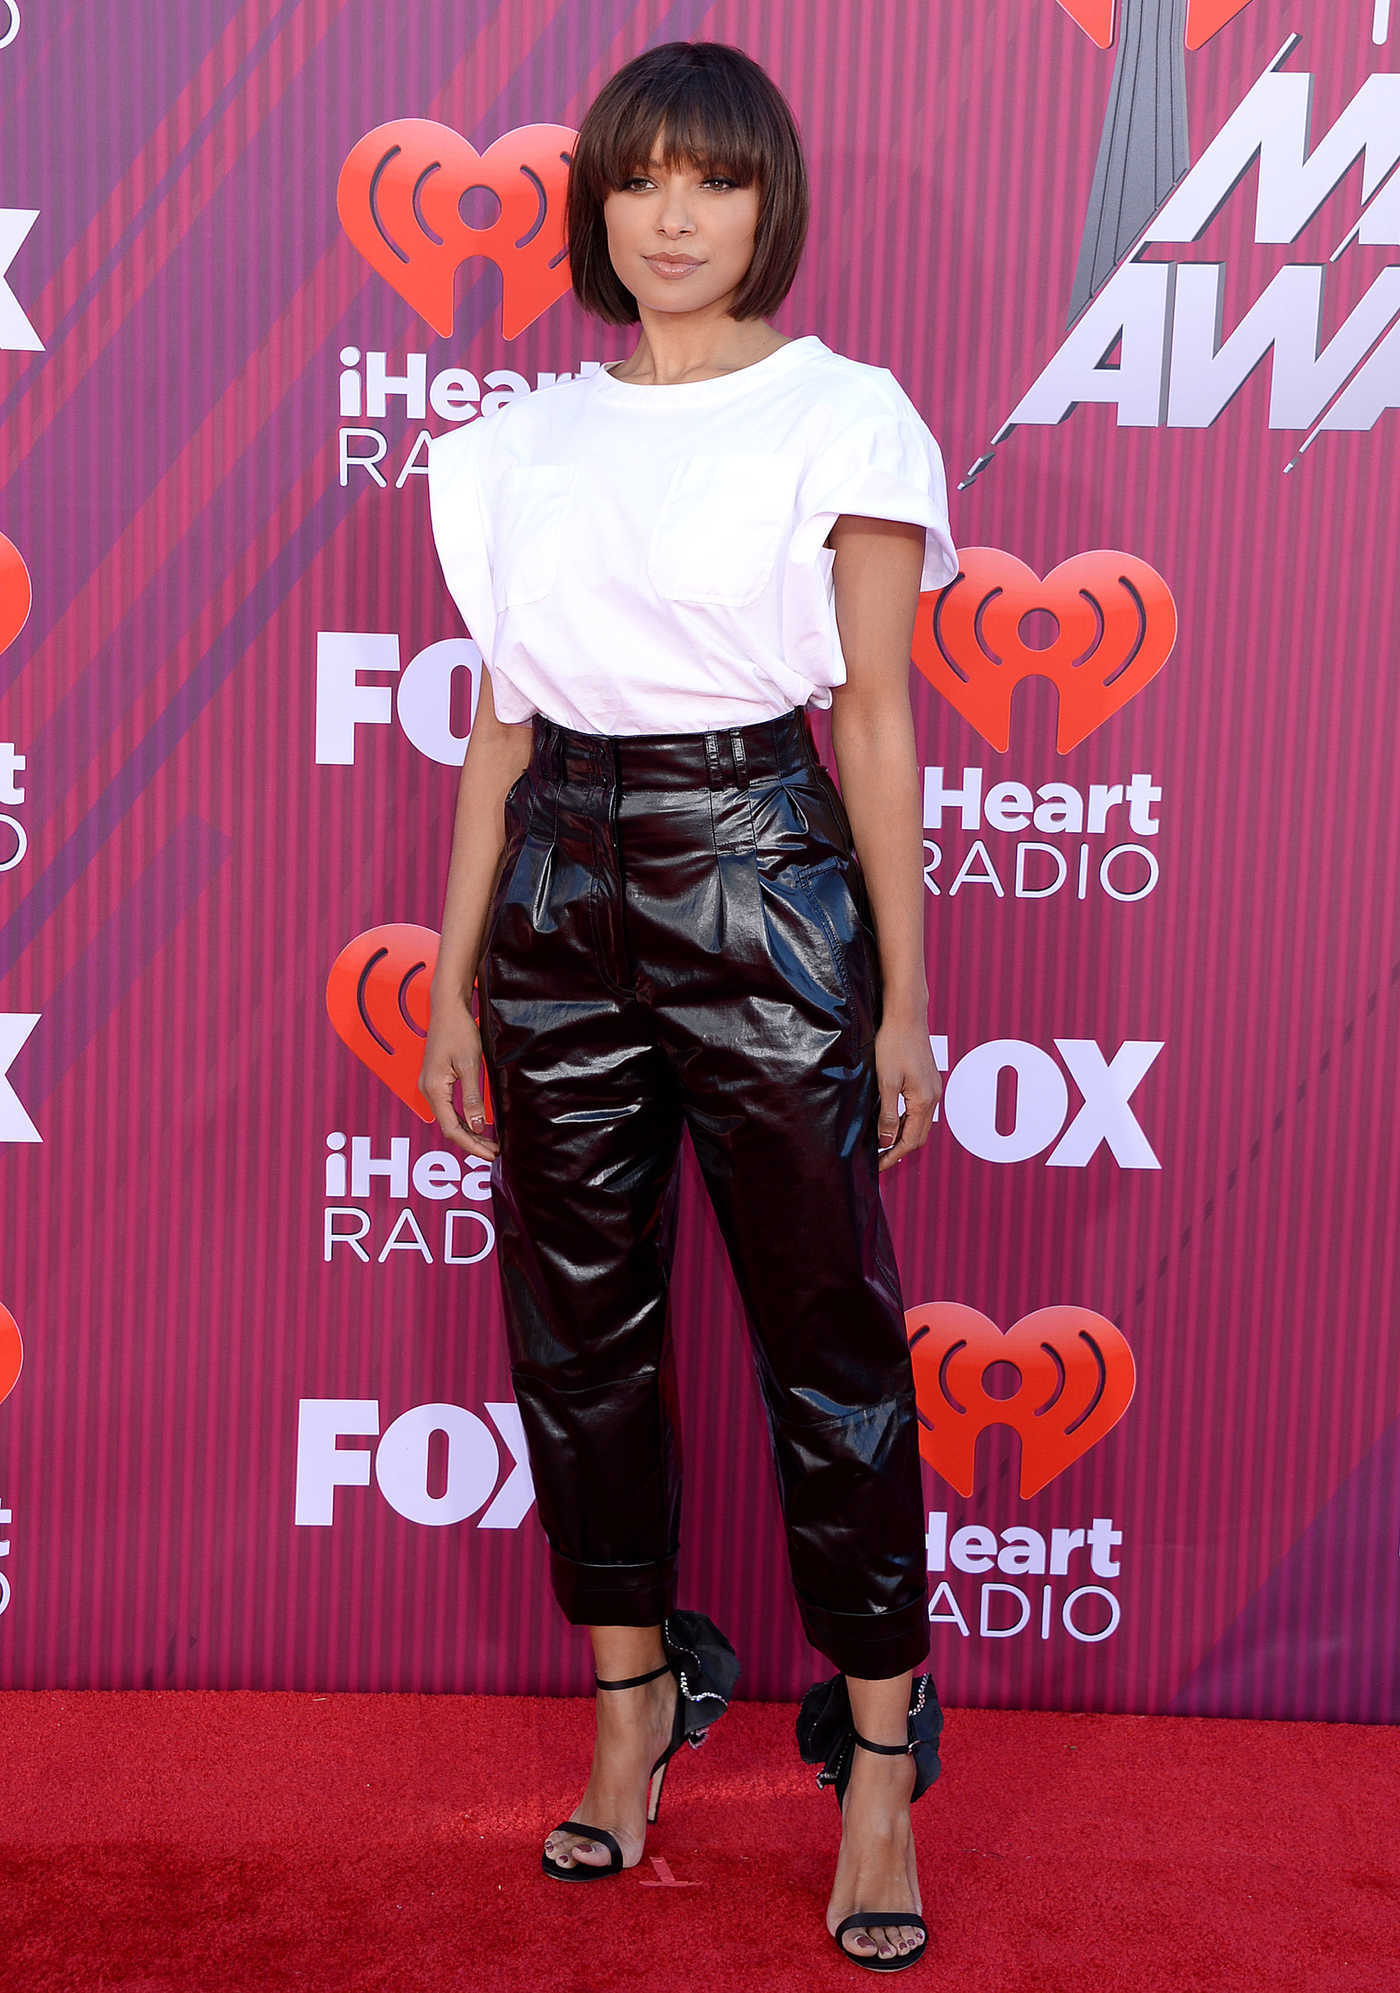 Kat Graham Attends 2019 iHeartRadio Music Awards at Microsoft Theater in LA 03/14/2019